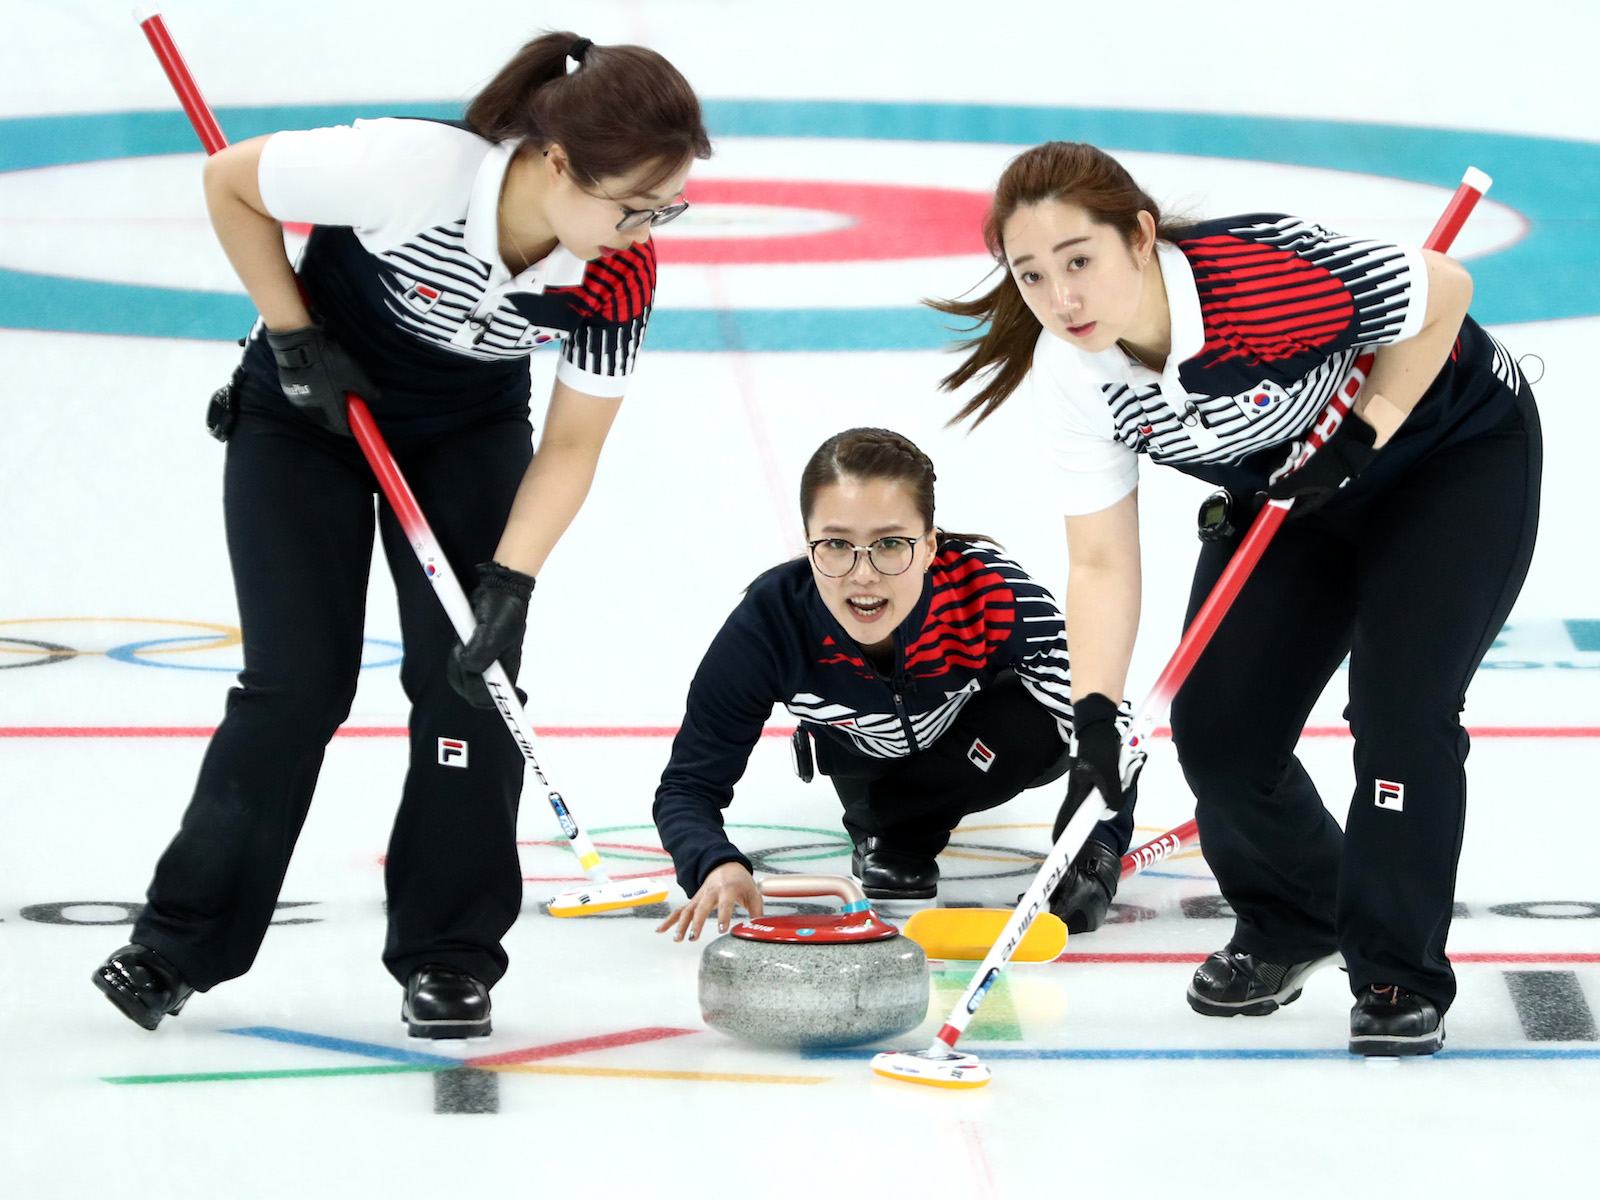 Korean women's curling team beats Japan to advance to finals